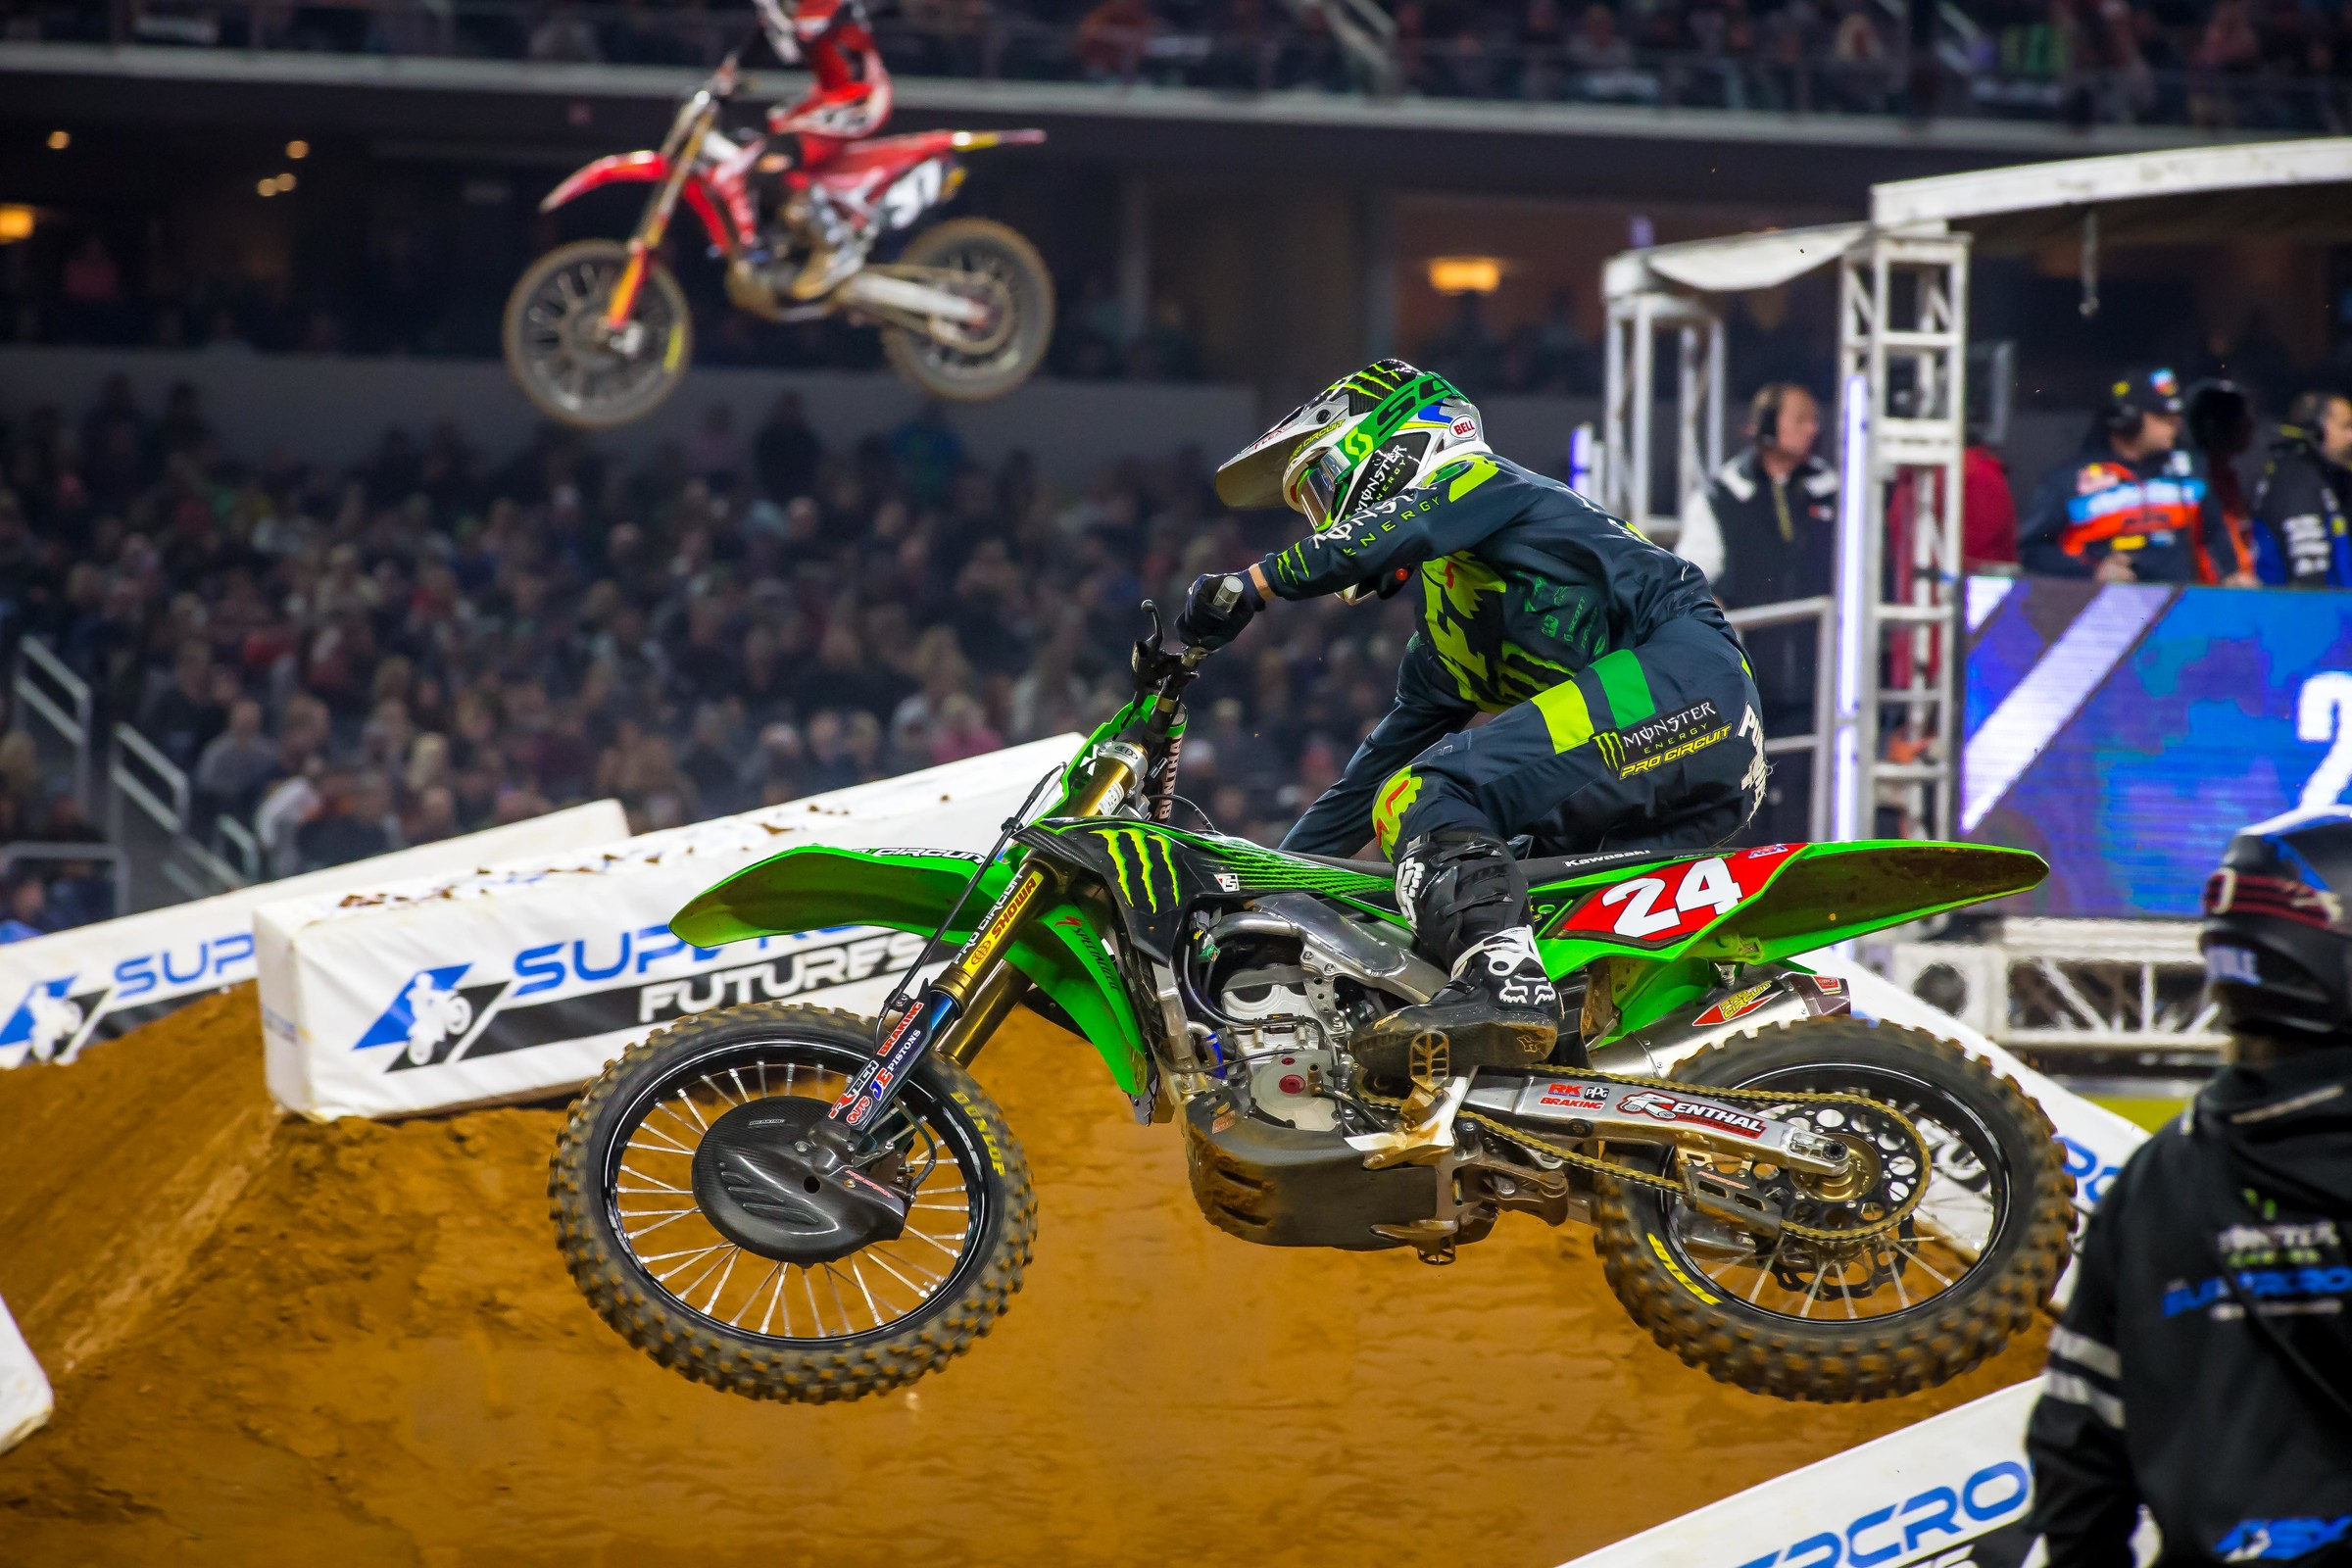 Austin Forkner held steady while Chase Sexton and Jordon Smith tried to track him down.